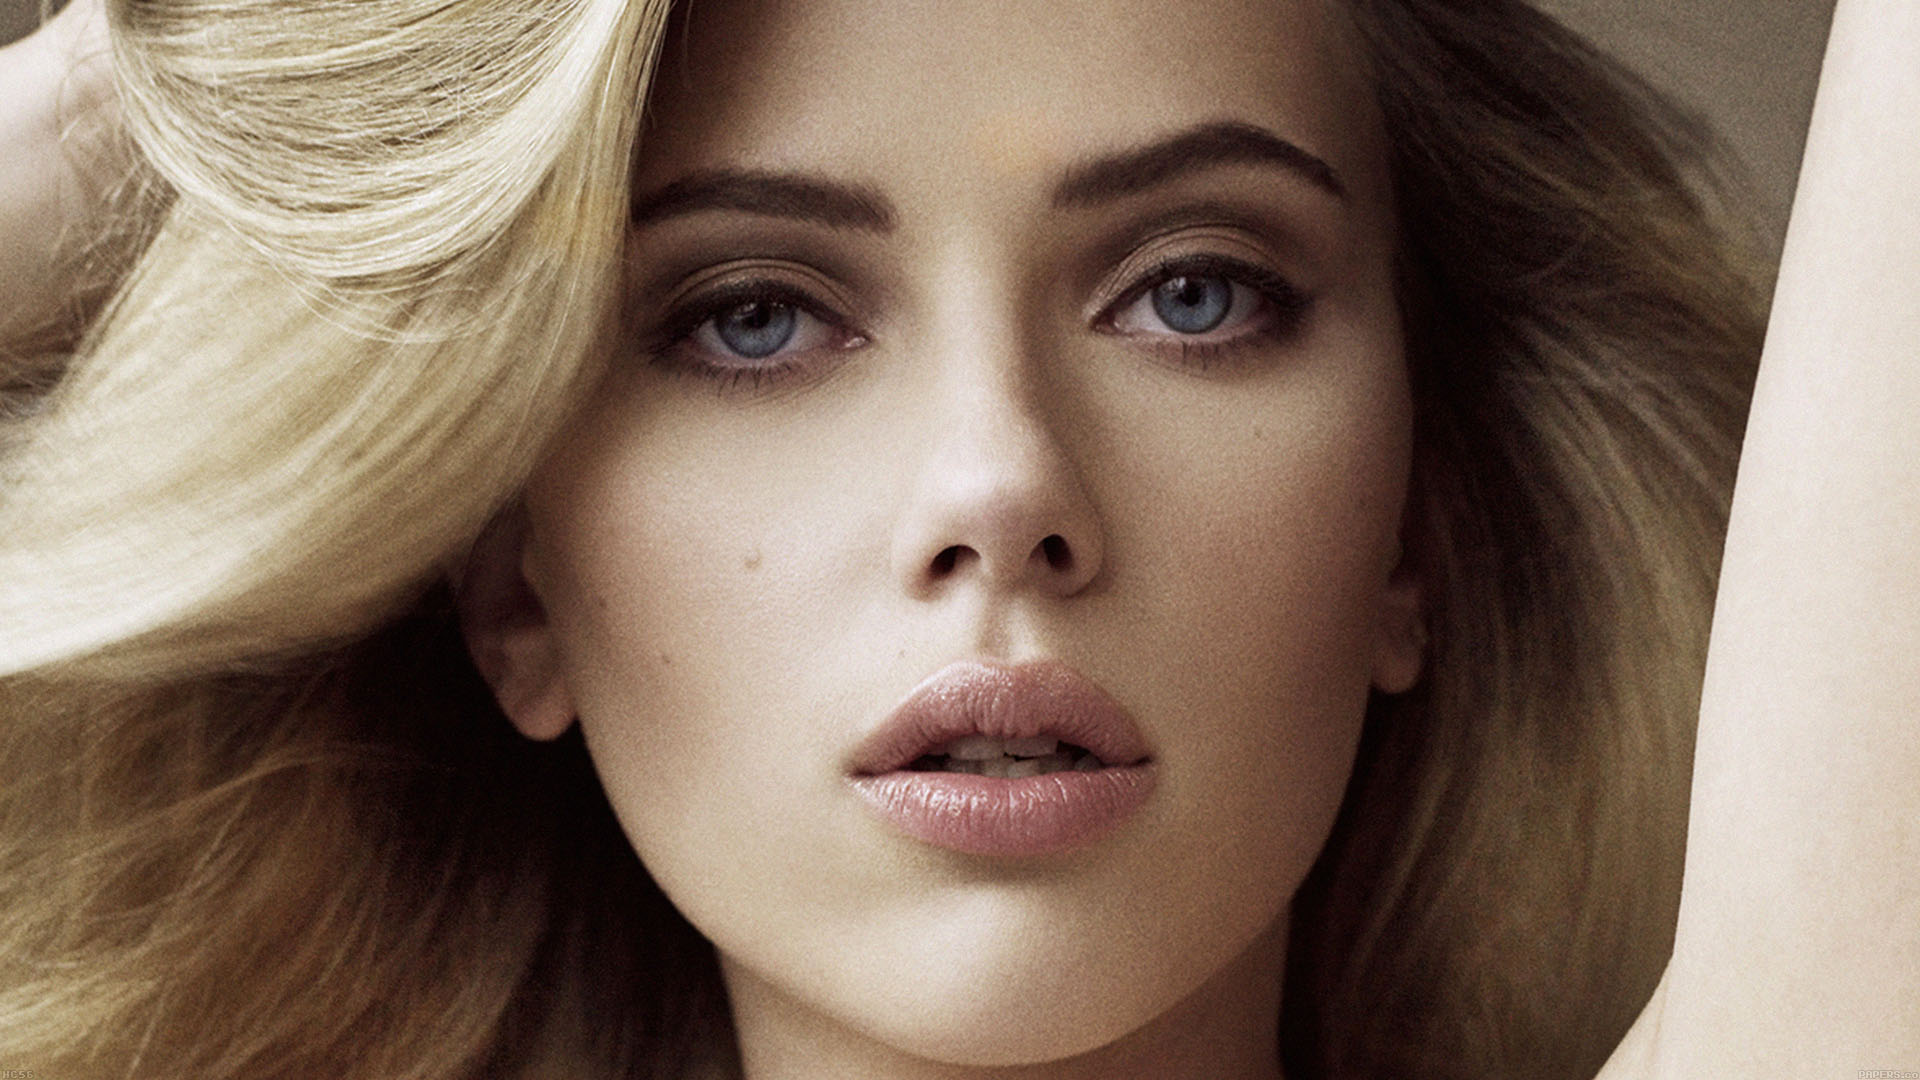 Fall Wallpaper Iphone 7 Plus Hc56 Scarlett Johansson Sexy Celebrity Papers Co